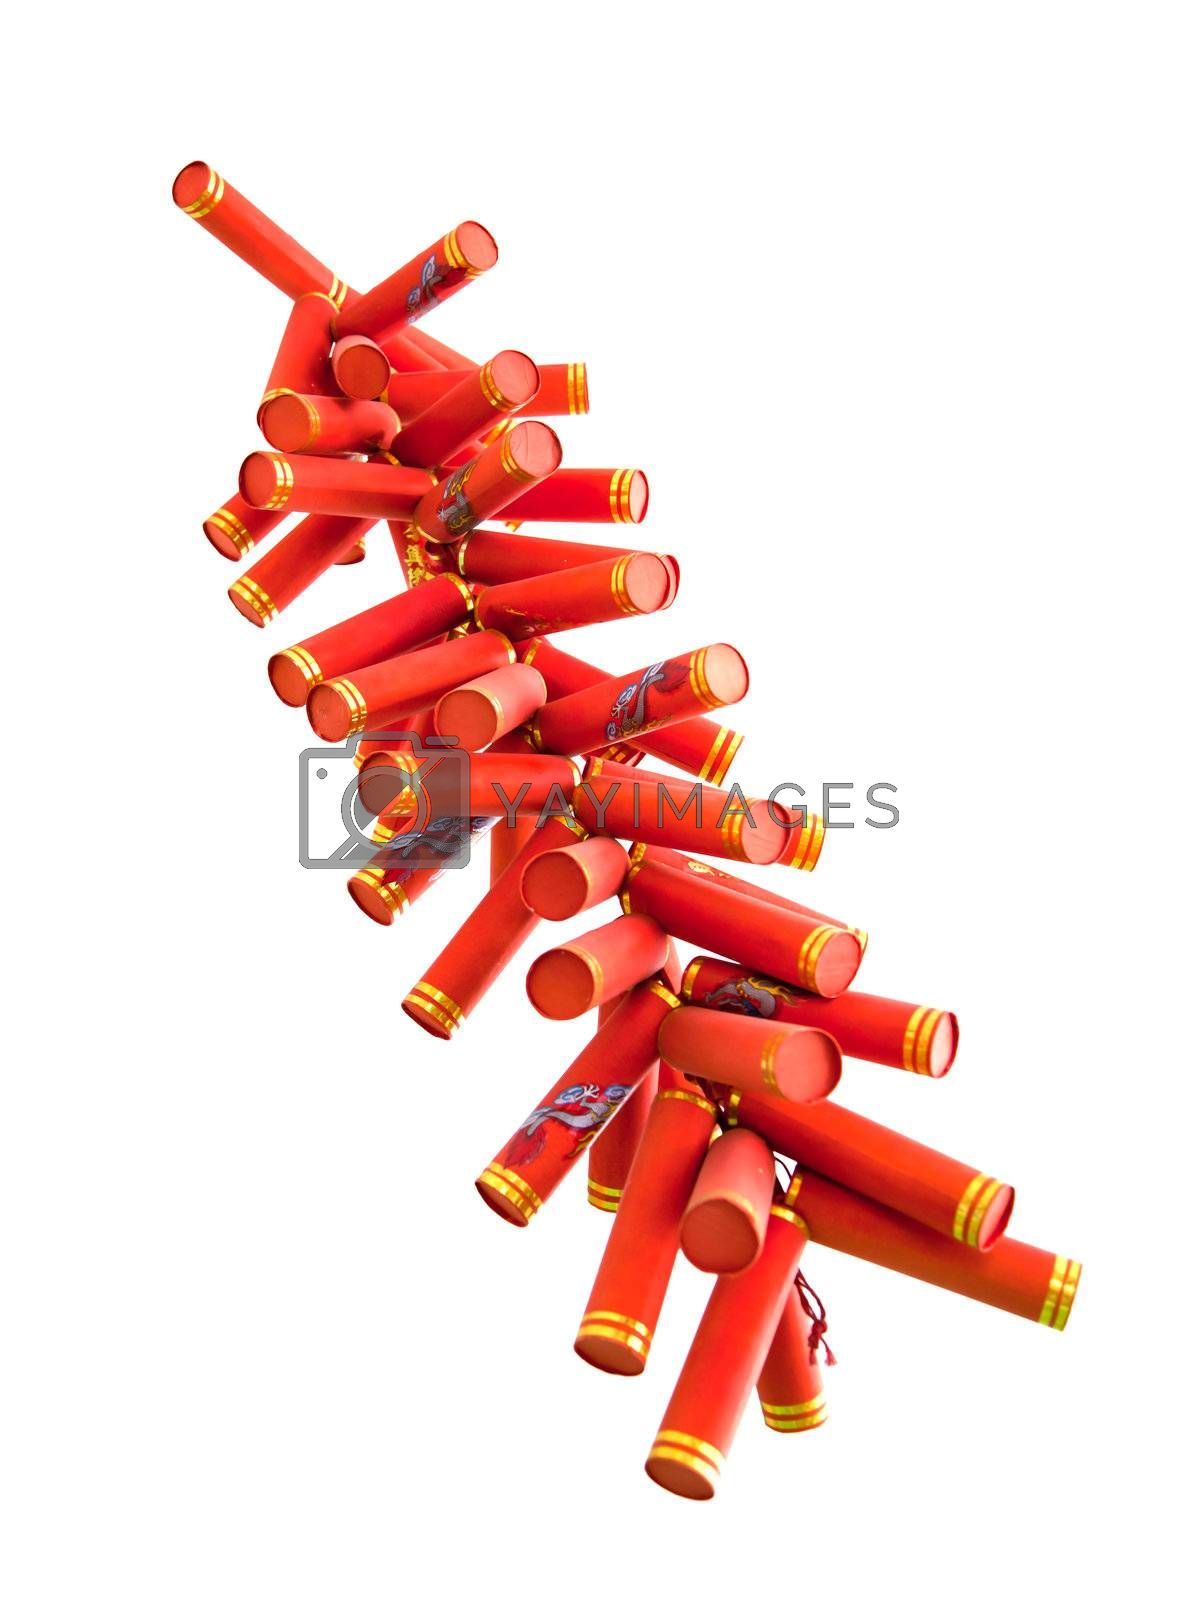 The red chinese firecrackers the symbol of Chinese New Year Festival hanging on white isolated white background.